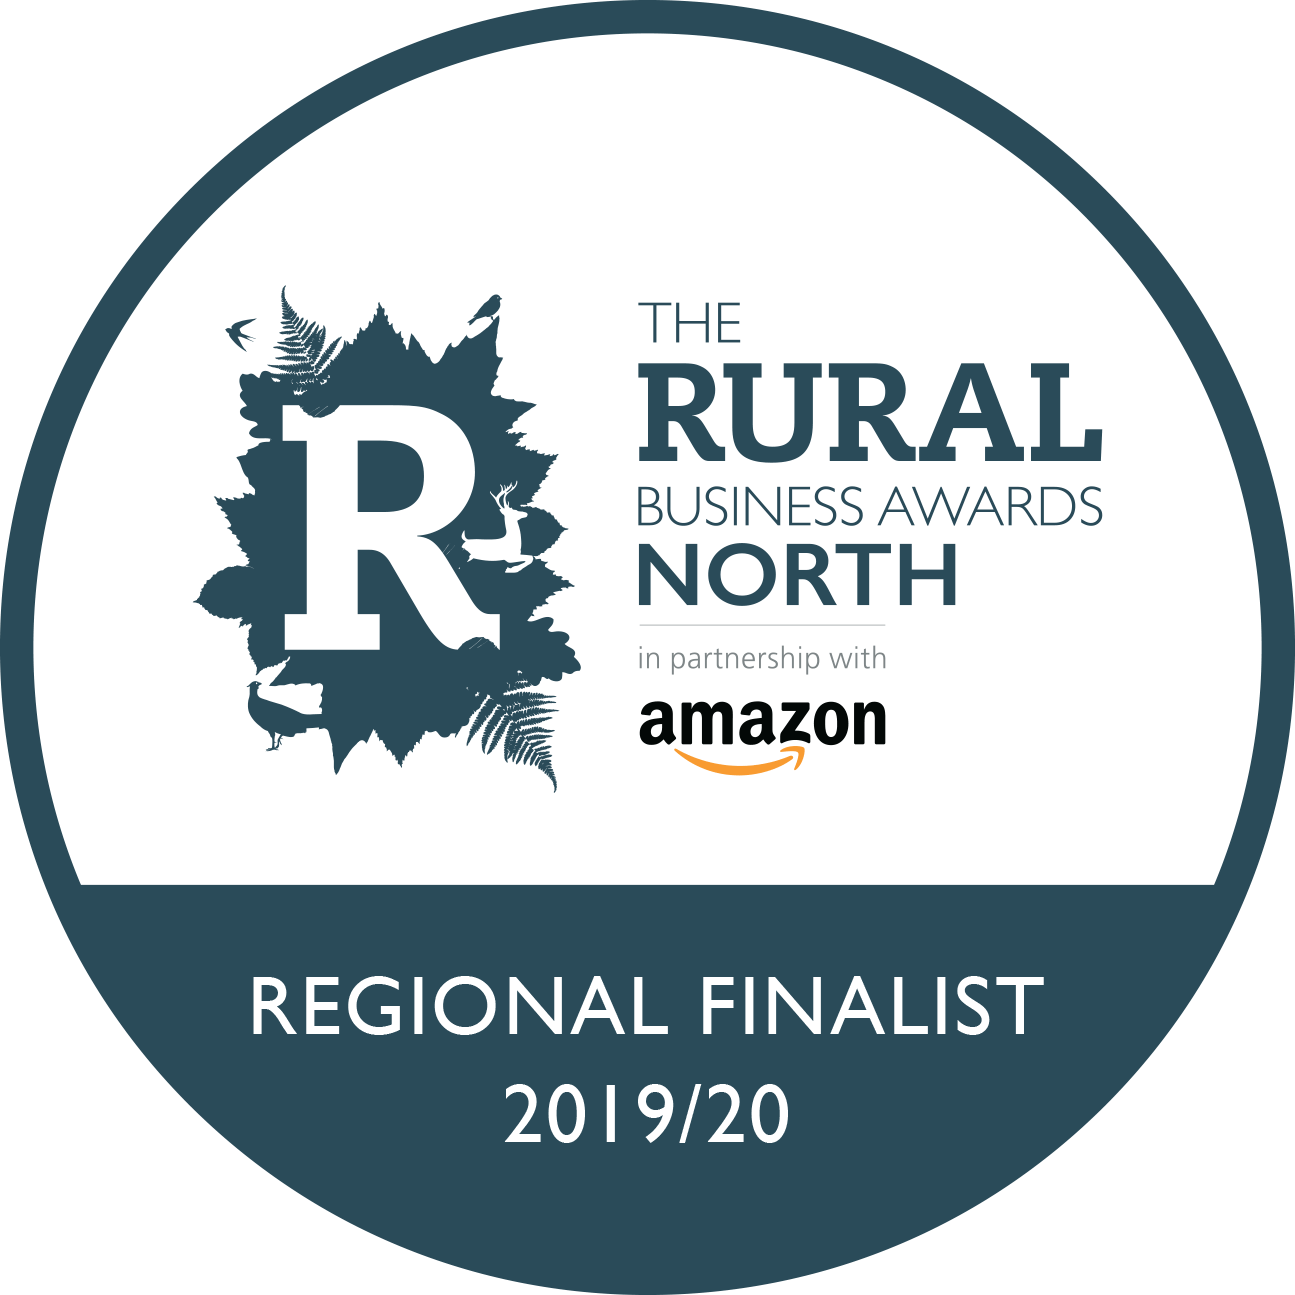 Regional-Finalist-North-2018_19